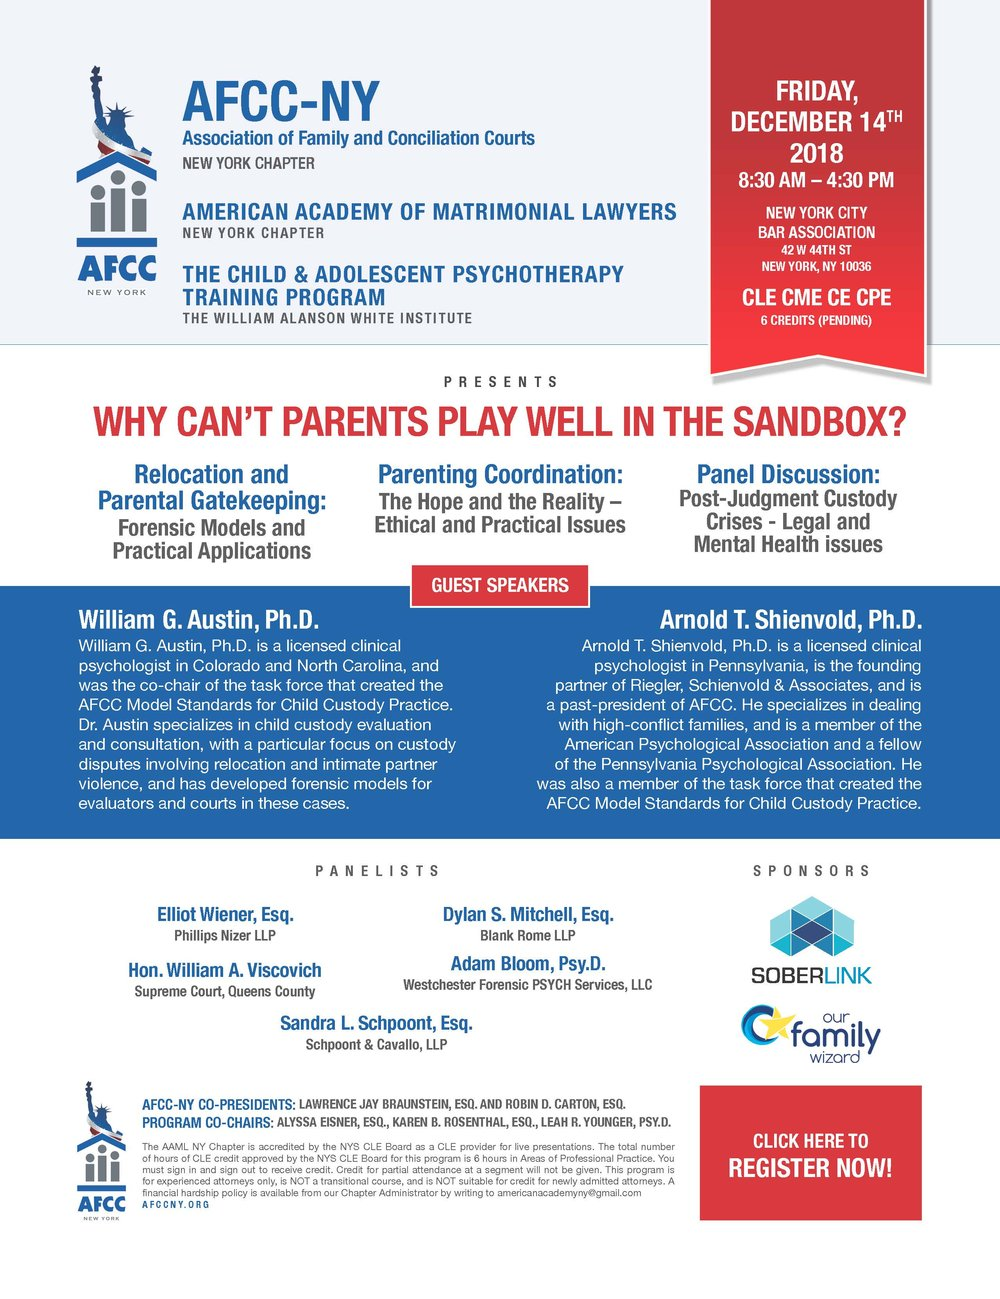 WHY CAN'T PARENTS PLAY WELL IN THE SANDBOX? -